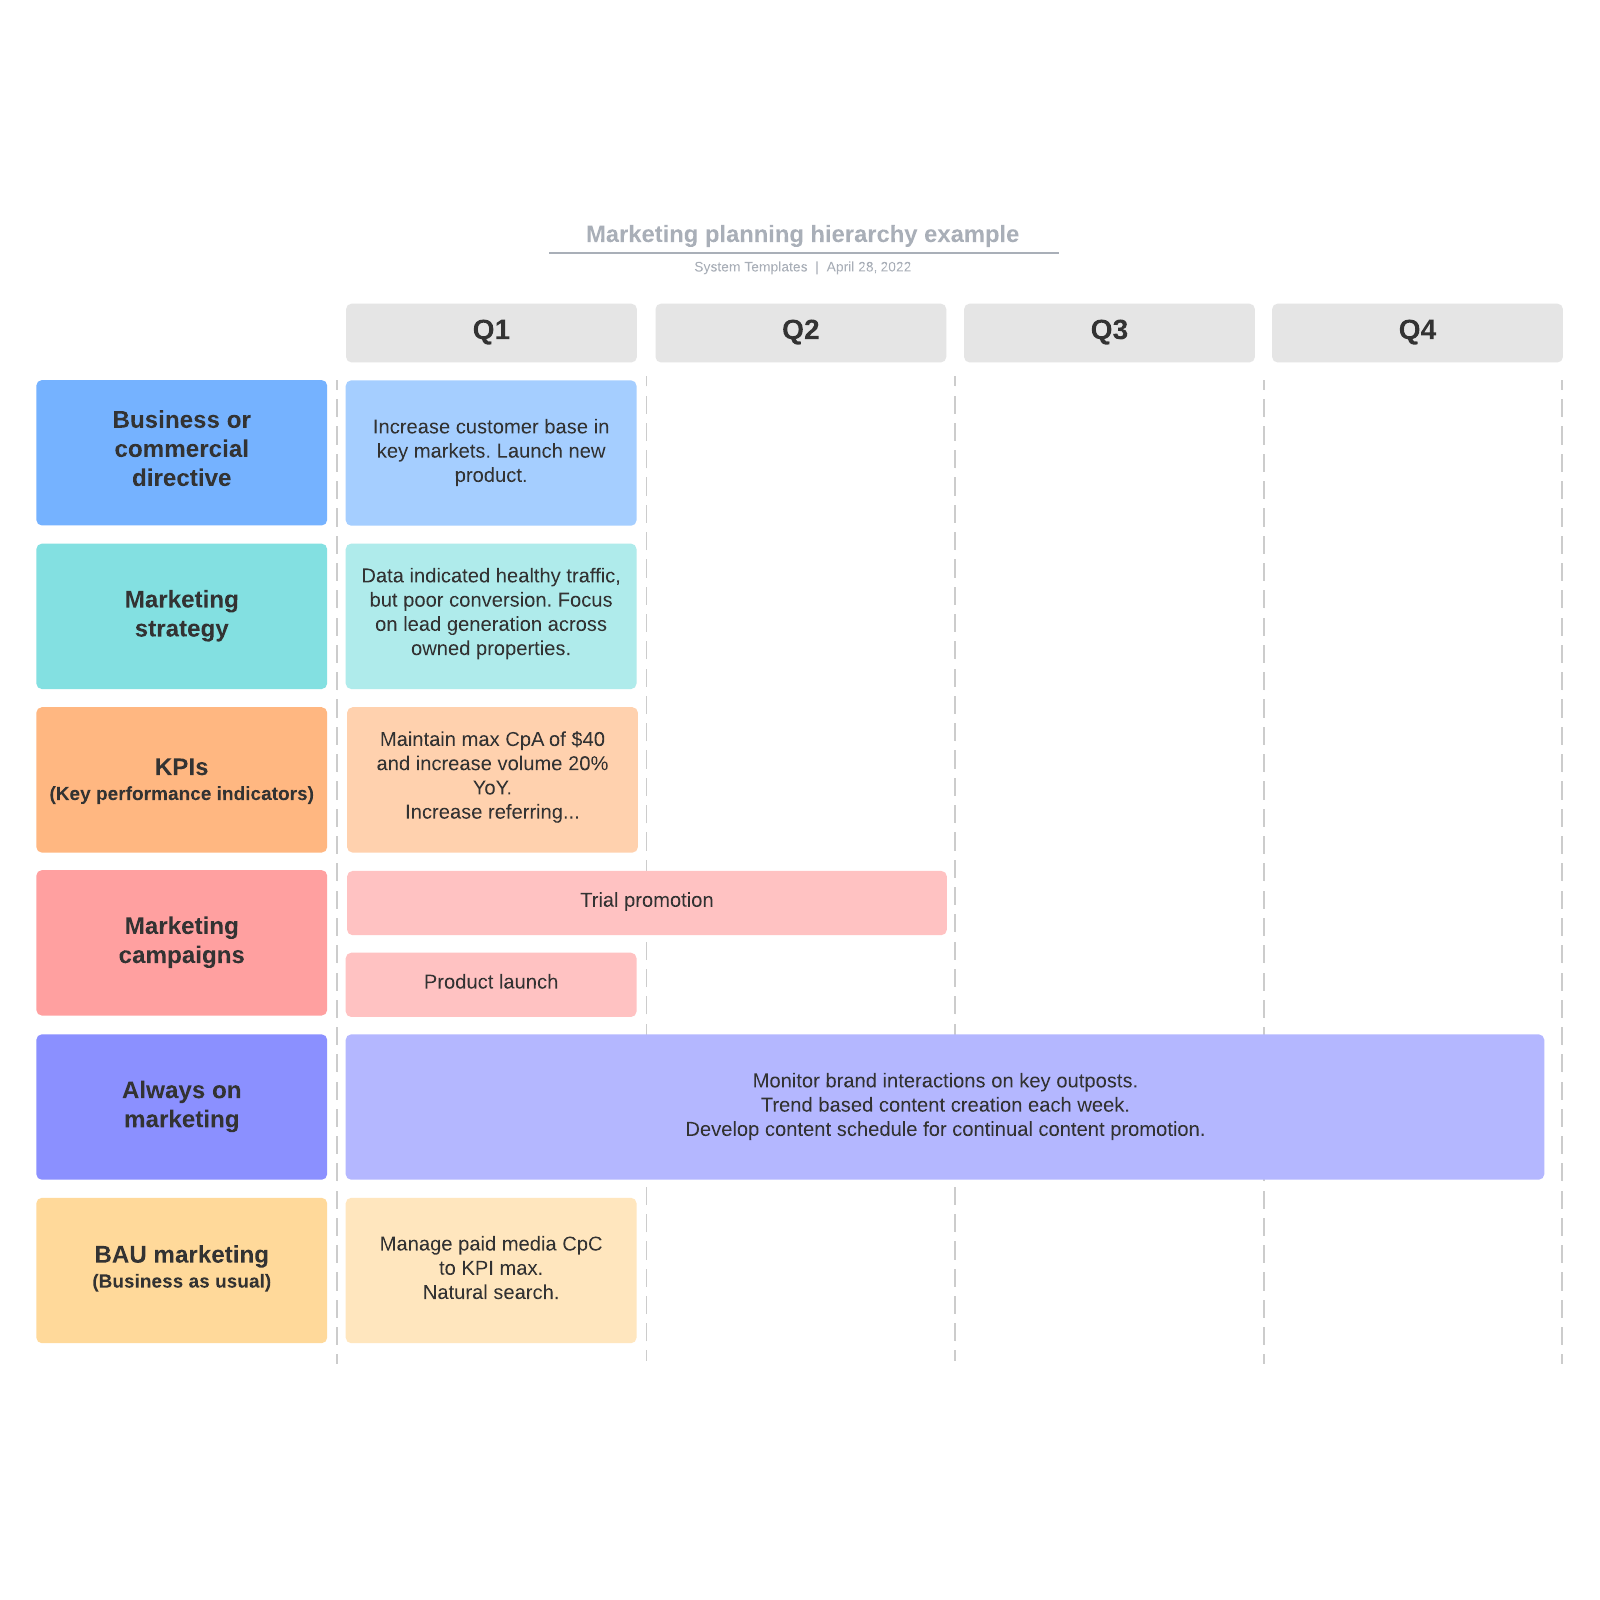 Marketing planning hierarchy example